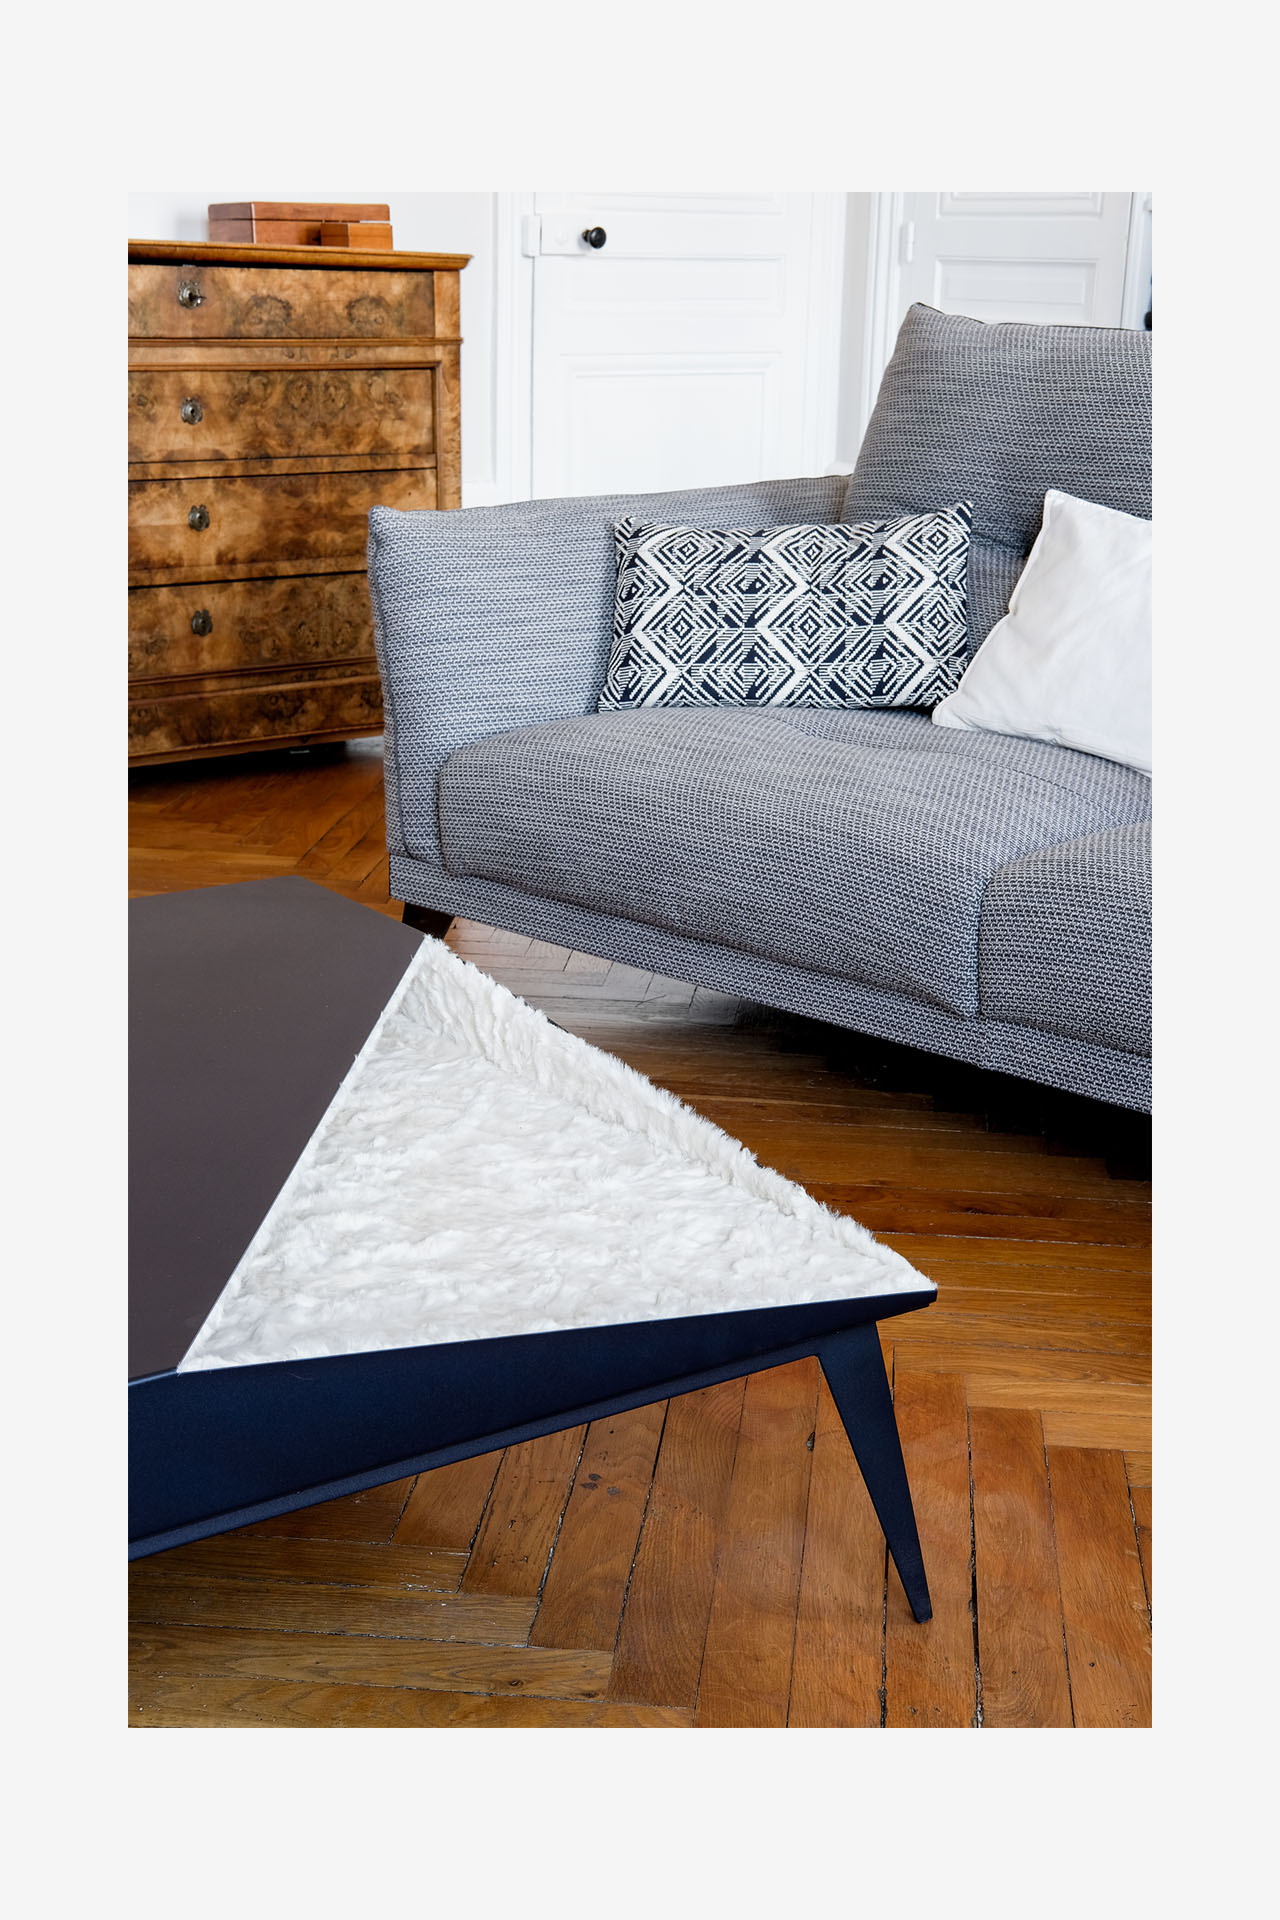 oxidee-table-basse-martiniere-07B